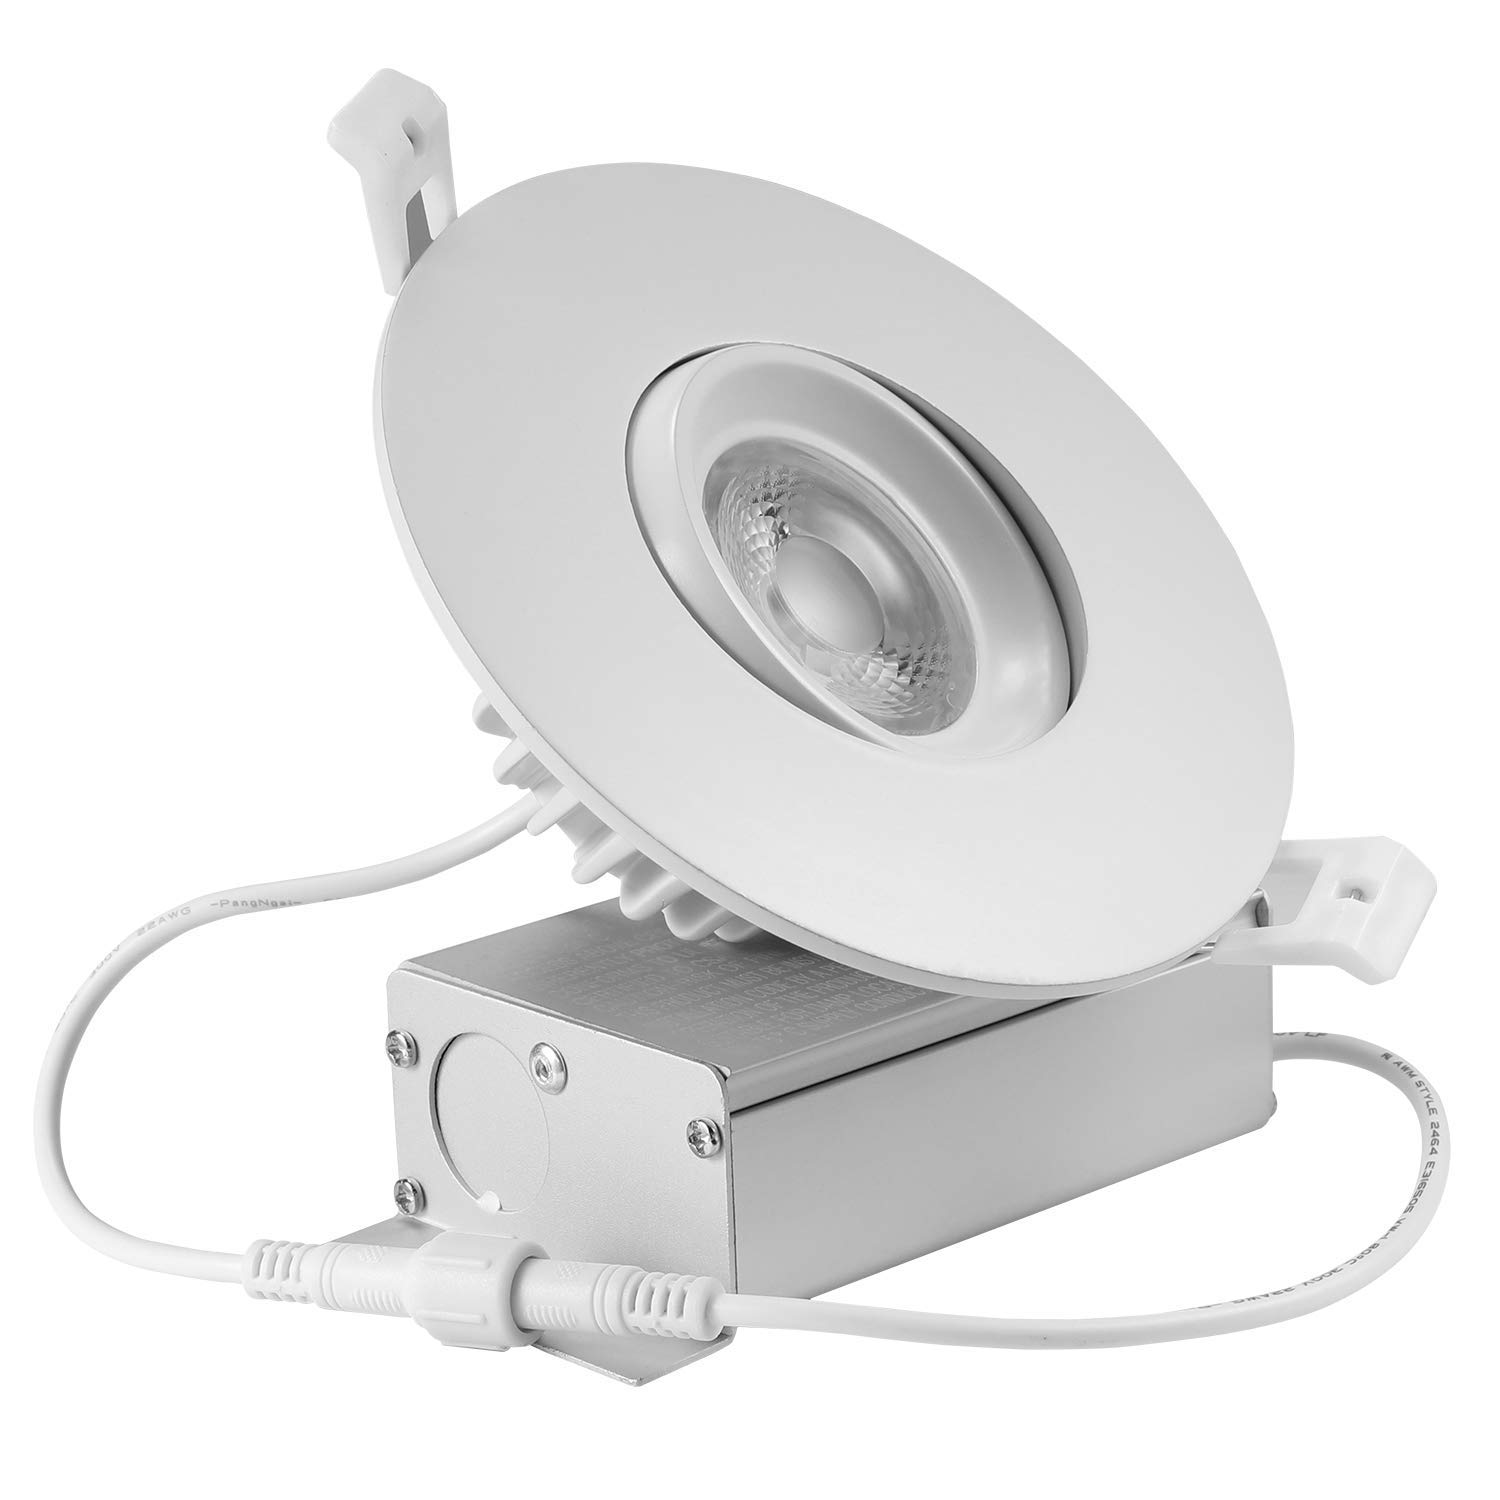 NICKLED 3 Color Dimmable 4 inch LED Gimbal Downlight, Adjustable LED Retrofit Lighting Fixture with Junction Box, 3000K(Warm White) 4000K(Bright White) 5000K(Day White) Switch Between 3 Colors 12W